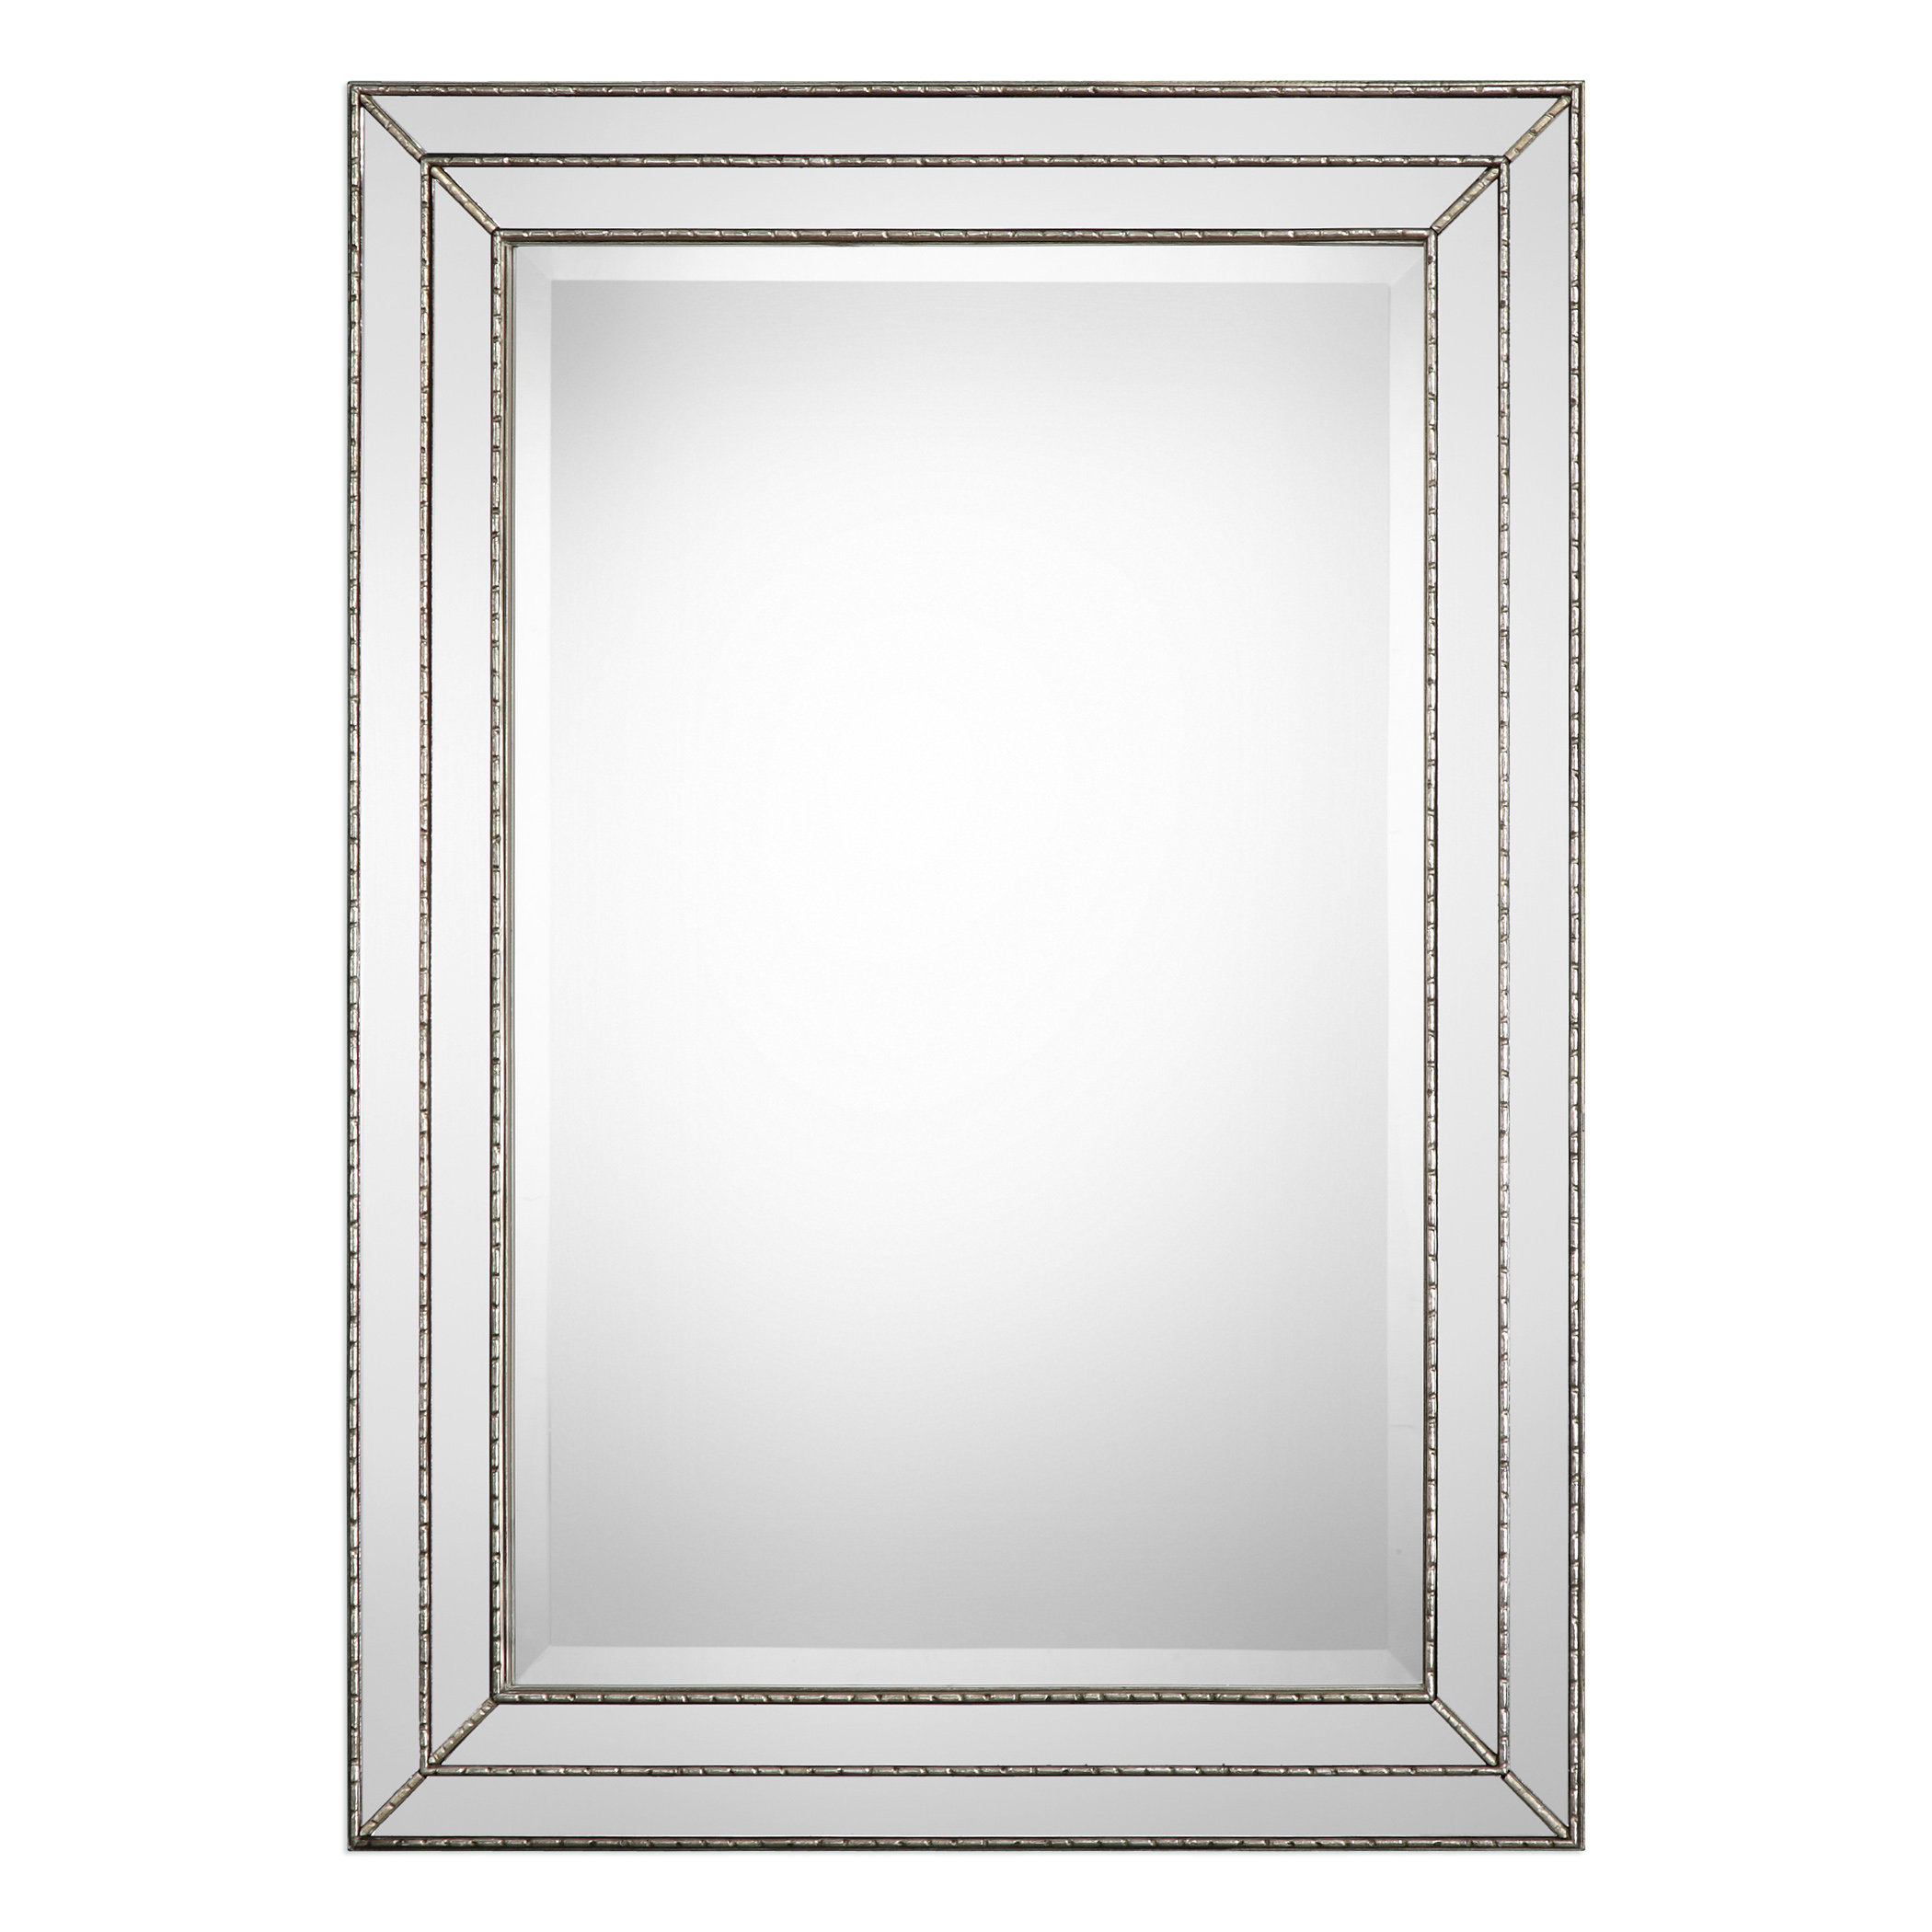 Greyleigh Willacoochee Traditional Beveled Accent Mirror Inside Willacoochee Traditional Beveled Accent Mirrors (View 4 of 20)